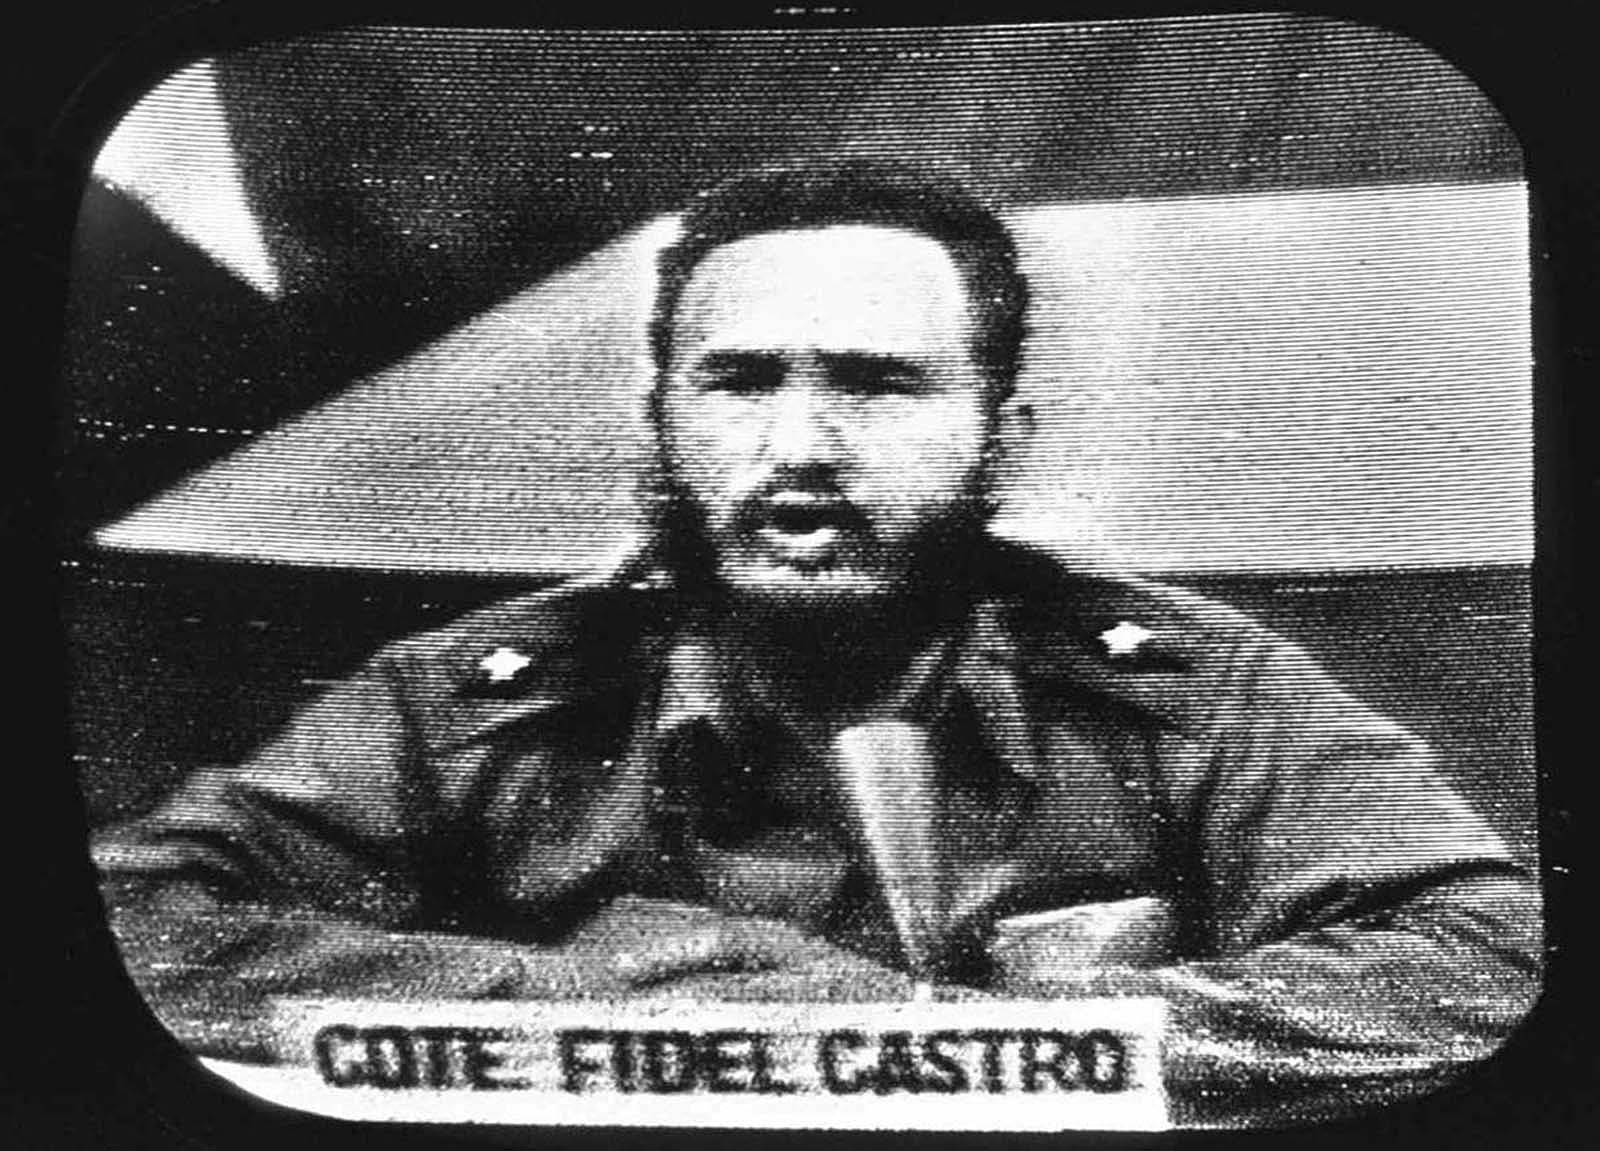 Cuban President Fidel Castro replies to President Kennedy's naval blockade via Cuban radio and television, on October 23, 1962. #cubaisland